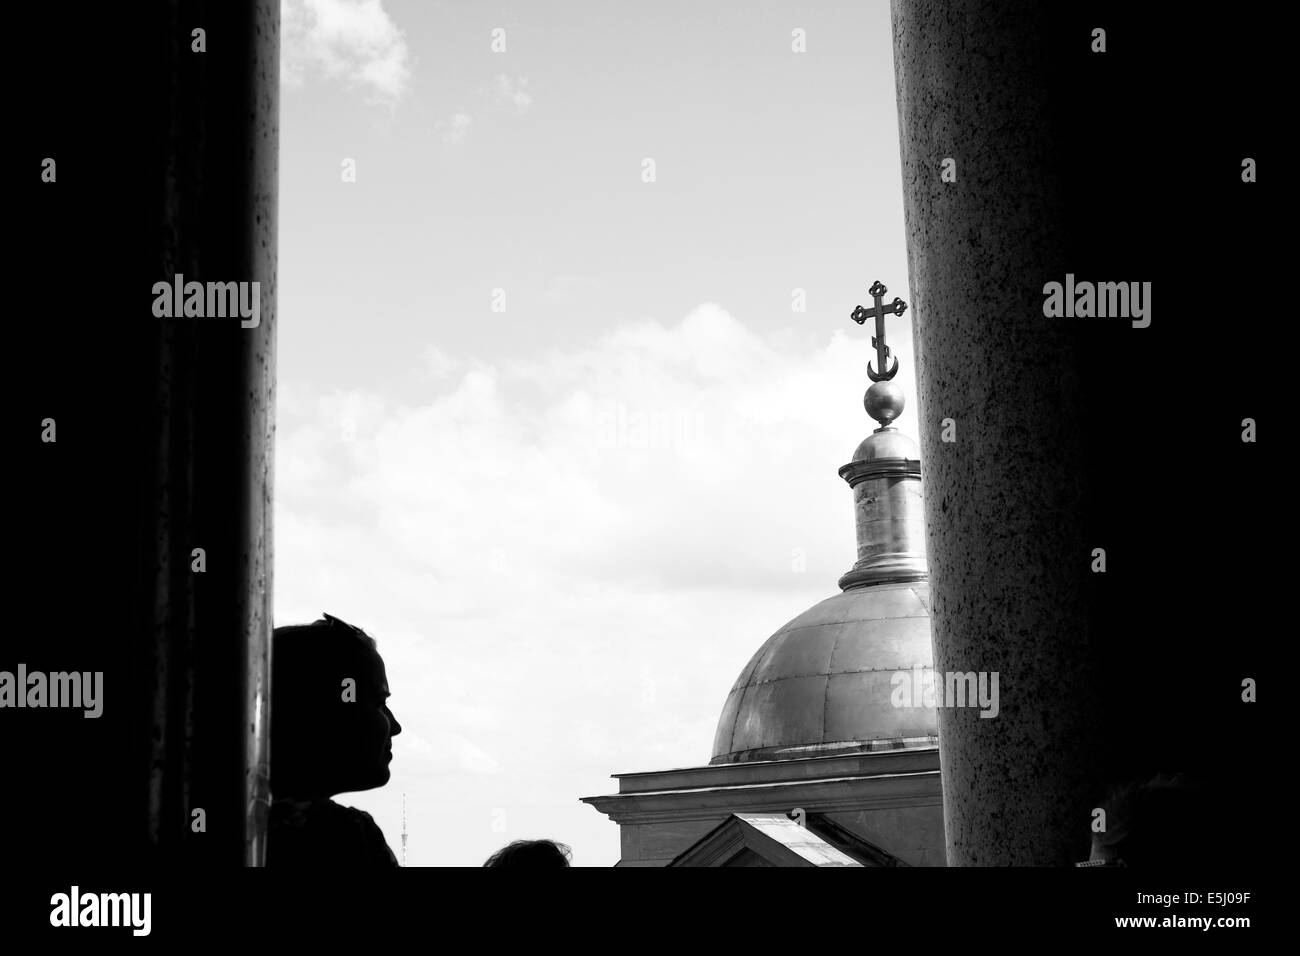 St Isaac's Cathedral, St Petersburg Stock Photo